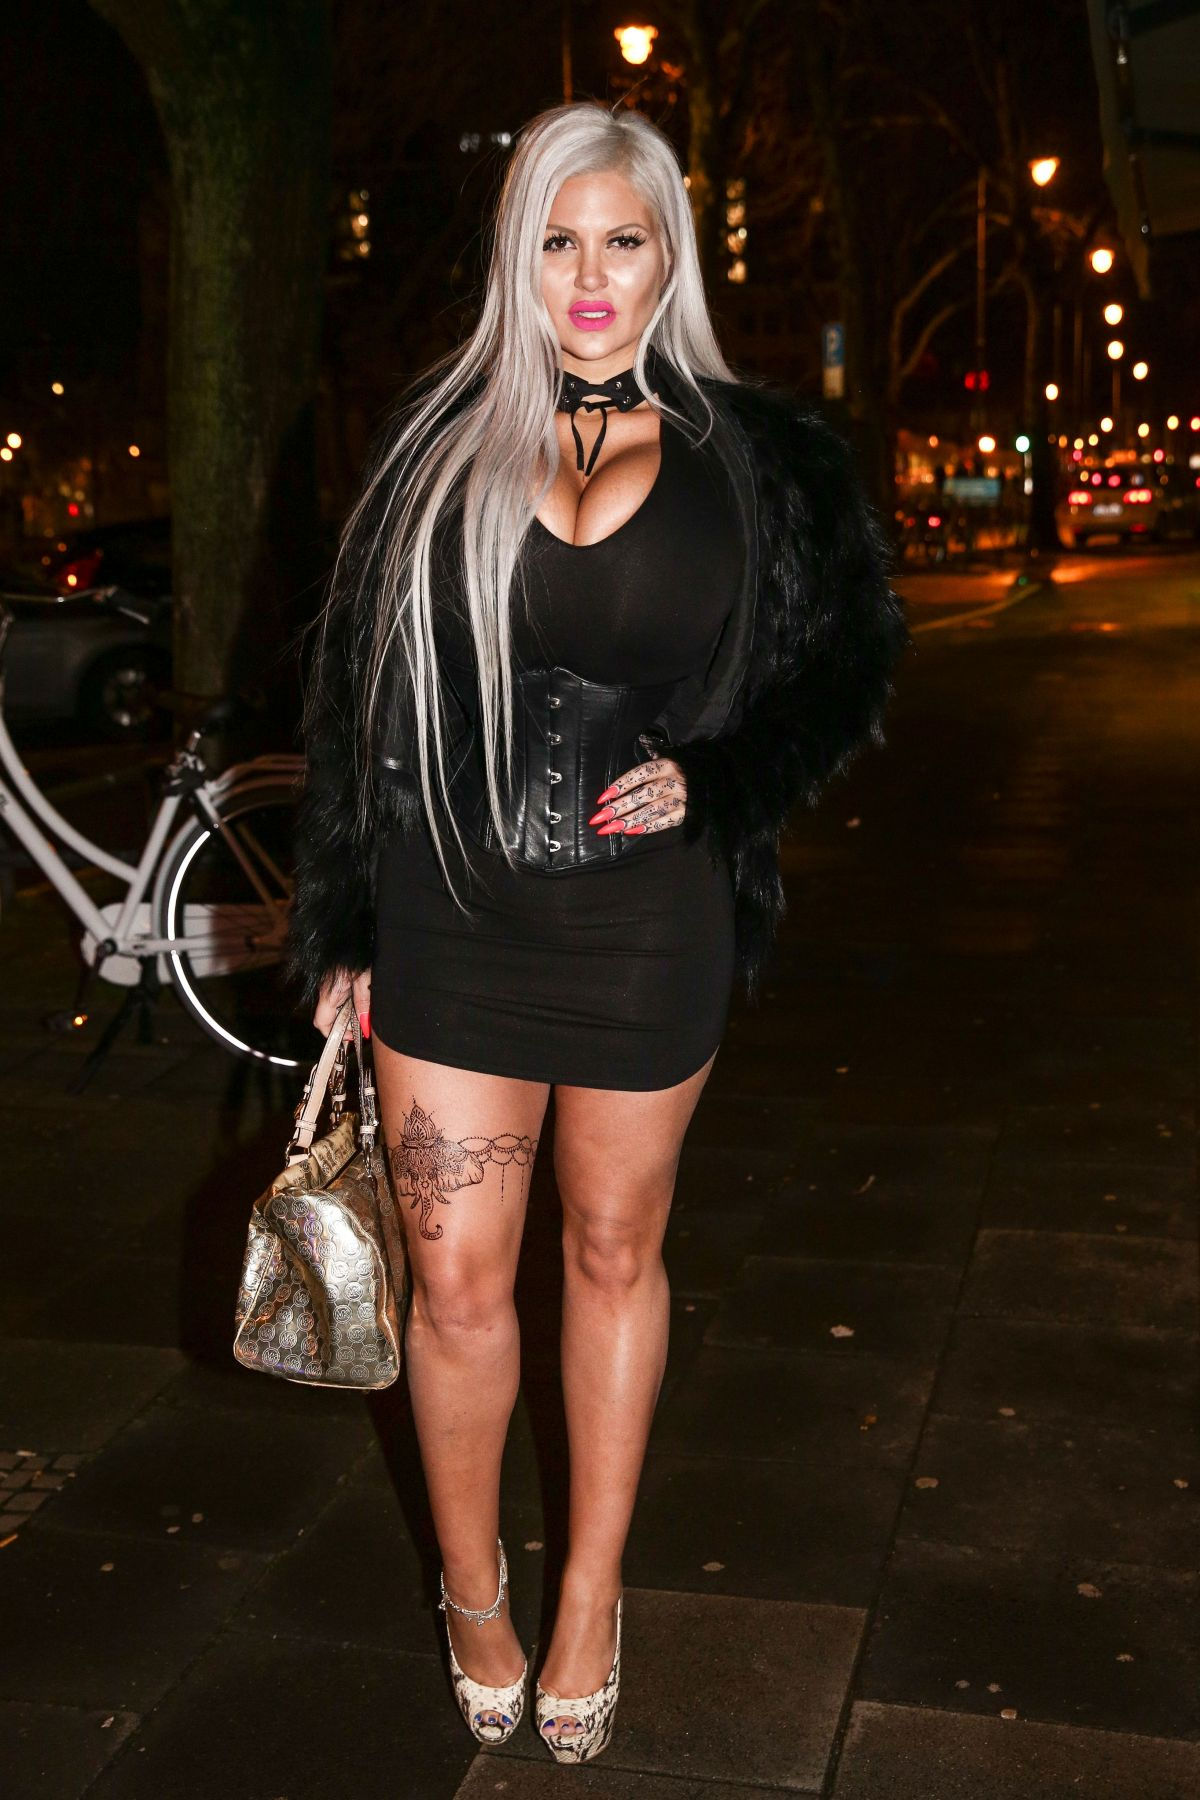 Sophia Vegas Wollersheim Out For Dinner In Cologne 01 31